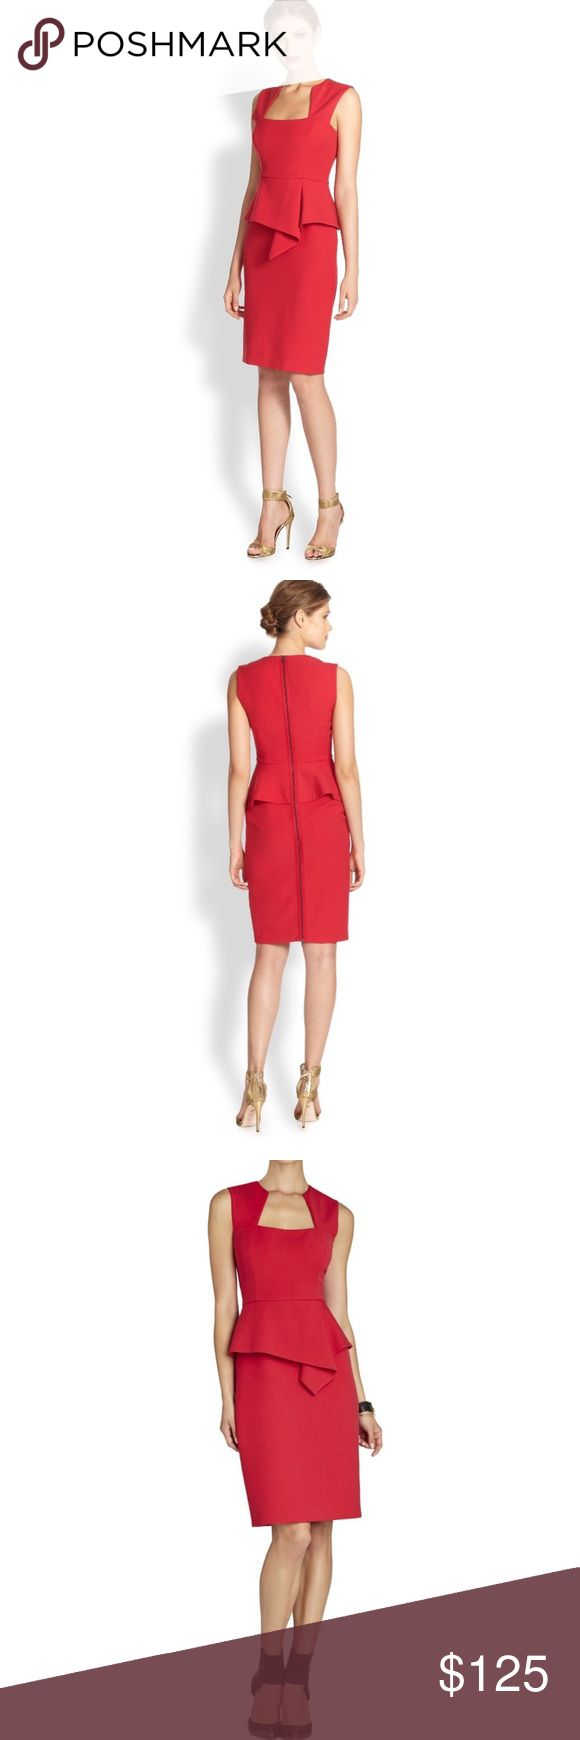 Bcbg Max Azria red peplum dress size 4 Beautiful dress for a beautiful occasion. Don't miss out on this beauty! Any questions please ask BCBGMaxAzria Dresses